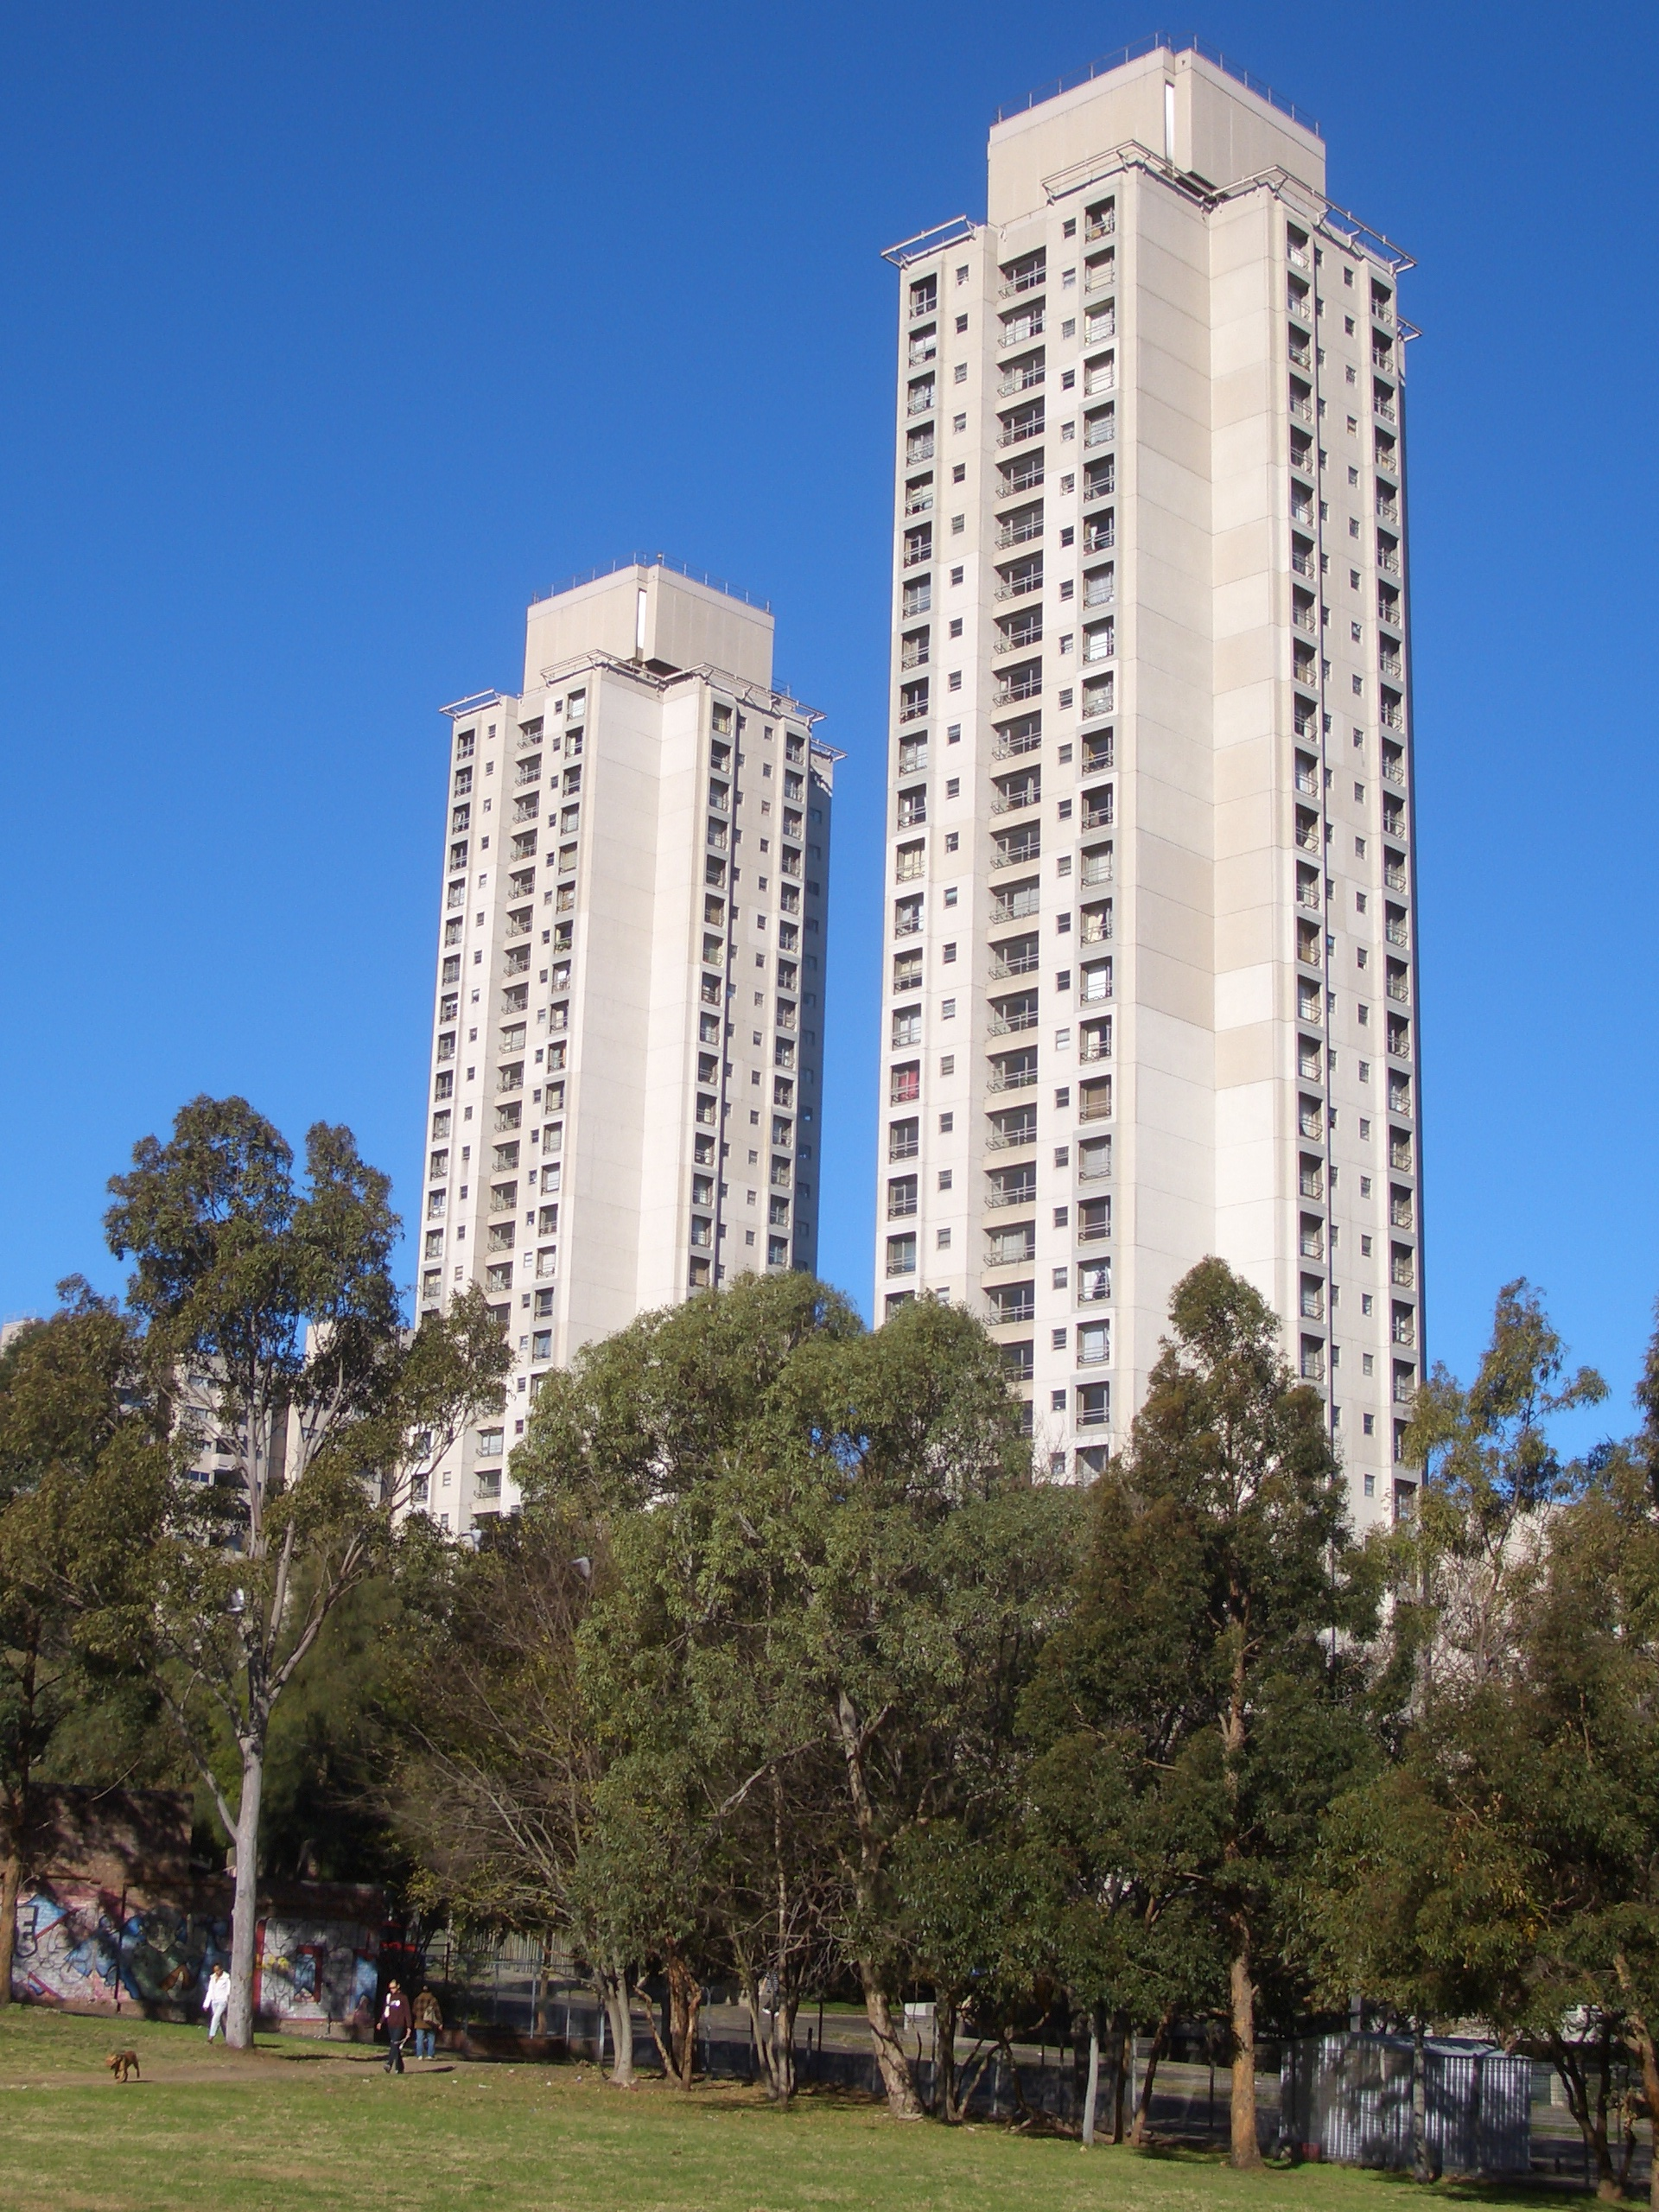 Tower Block